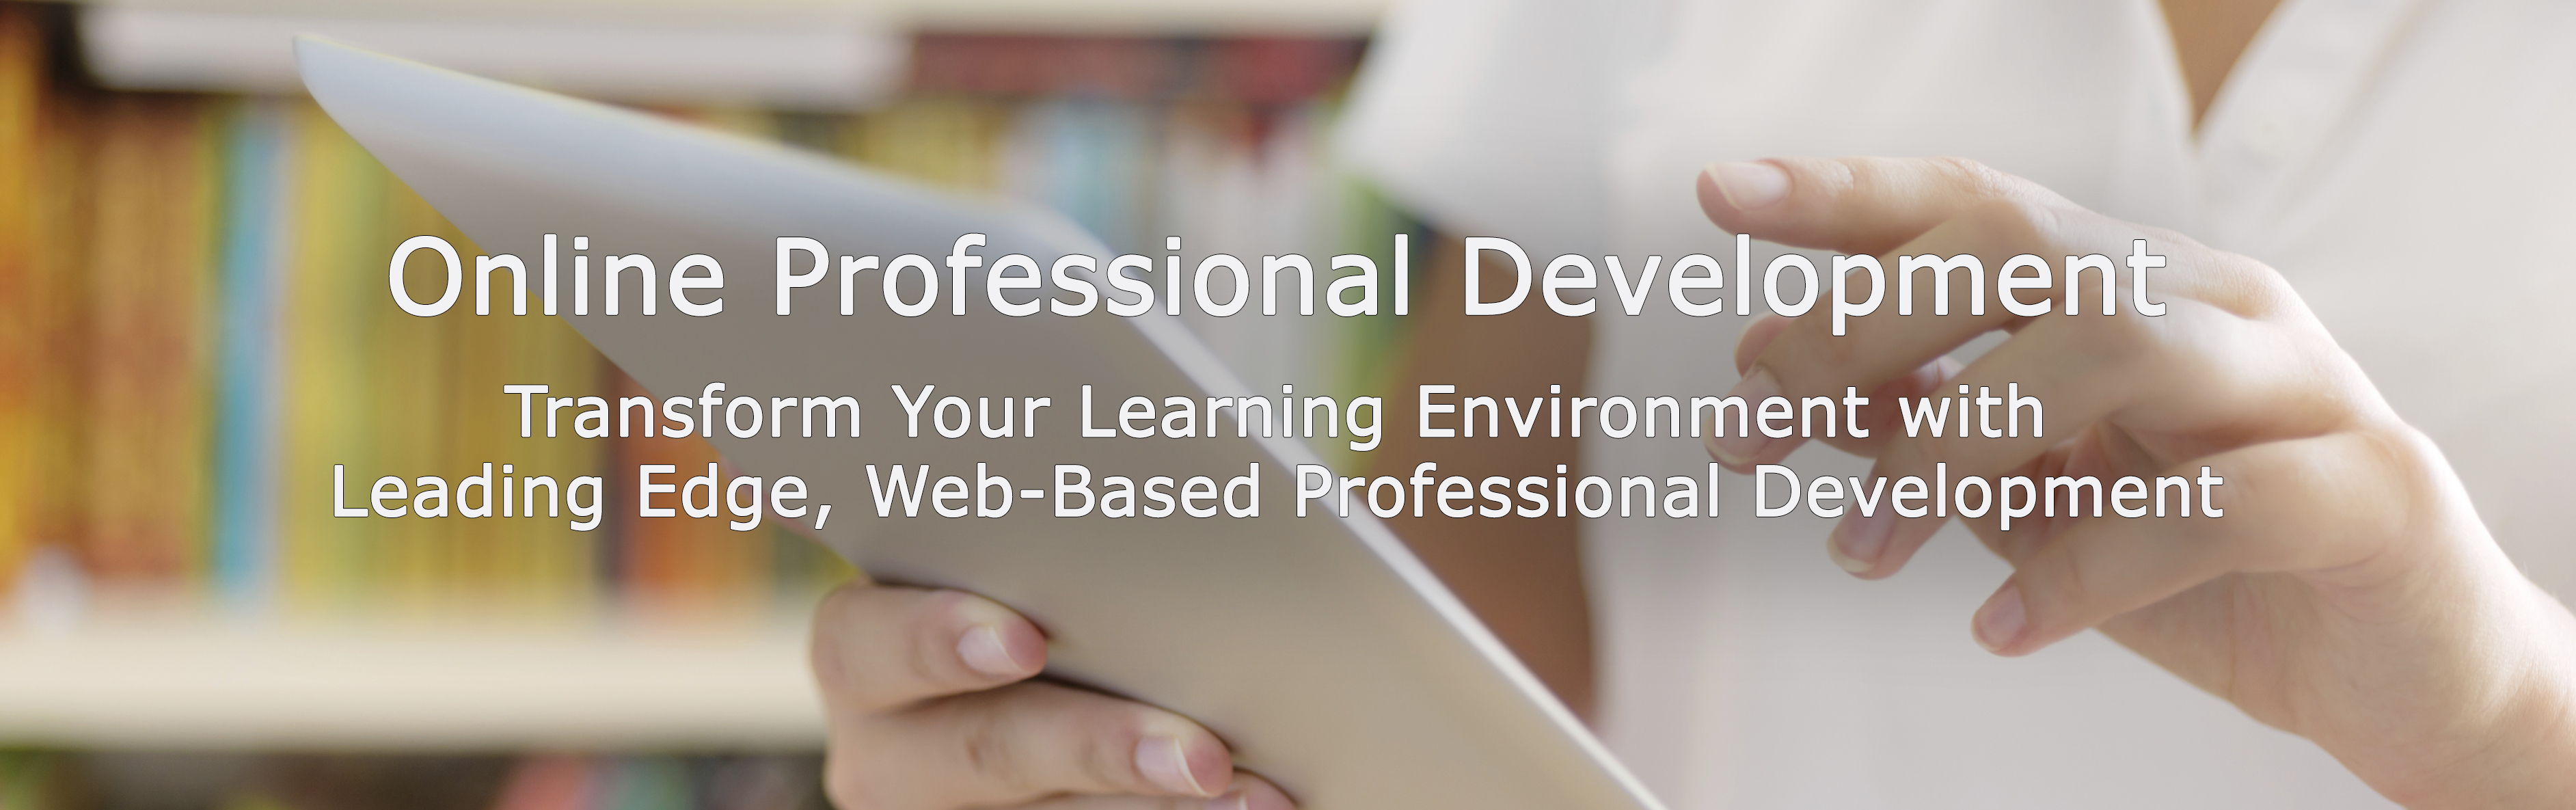 placeholder banner saying online professional development with a background showing hands over tablet